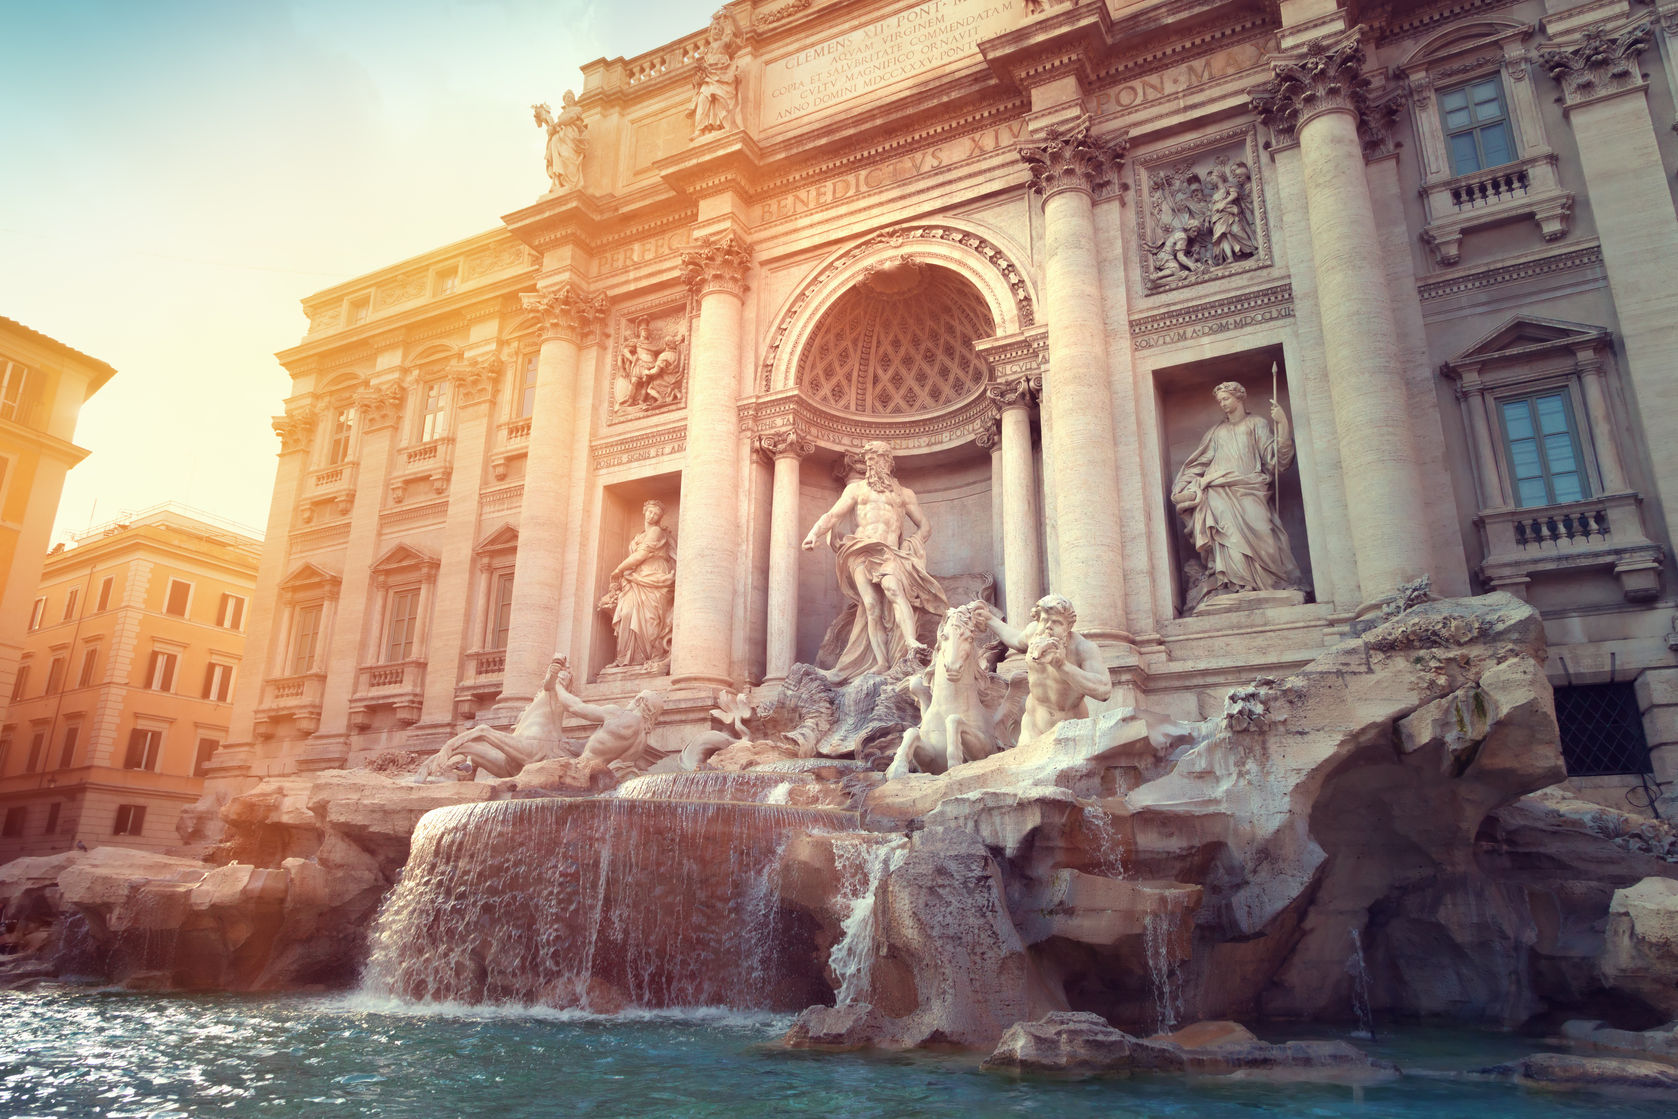 15 Places to Visit in Your 30's - Trevi Fountain